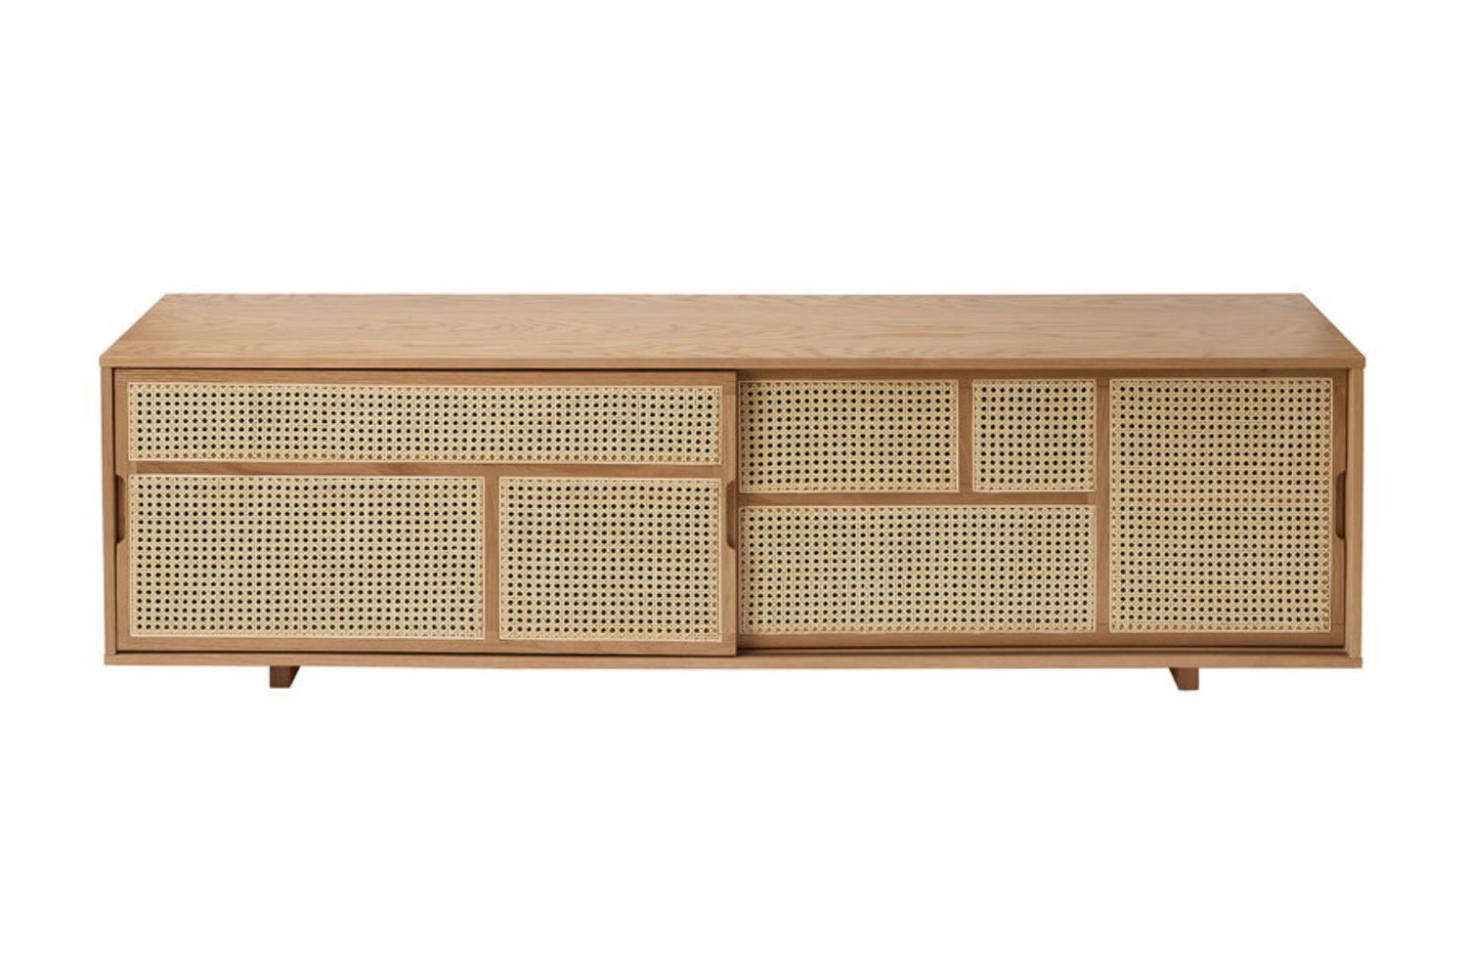 The Low Air Sideboard in Oak and Cane designed by Mathieu Gustafsson for Design House Stockholm is $src=